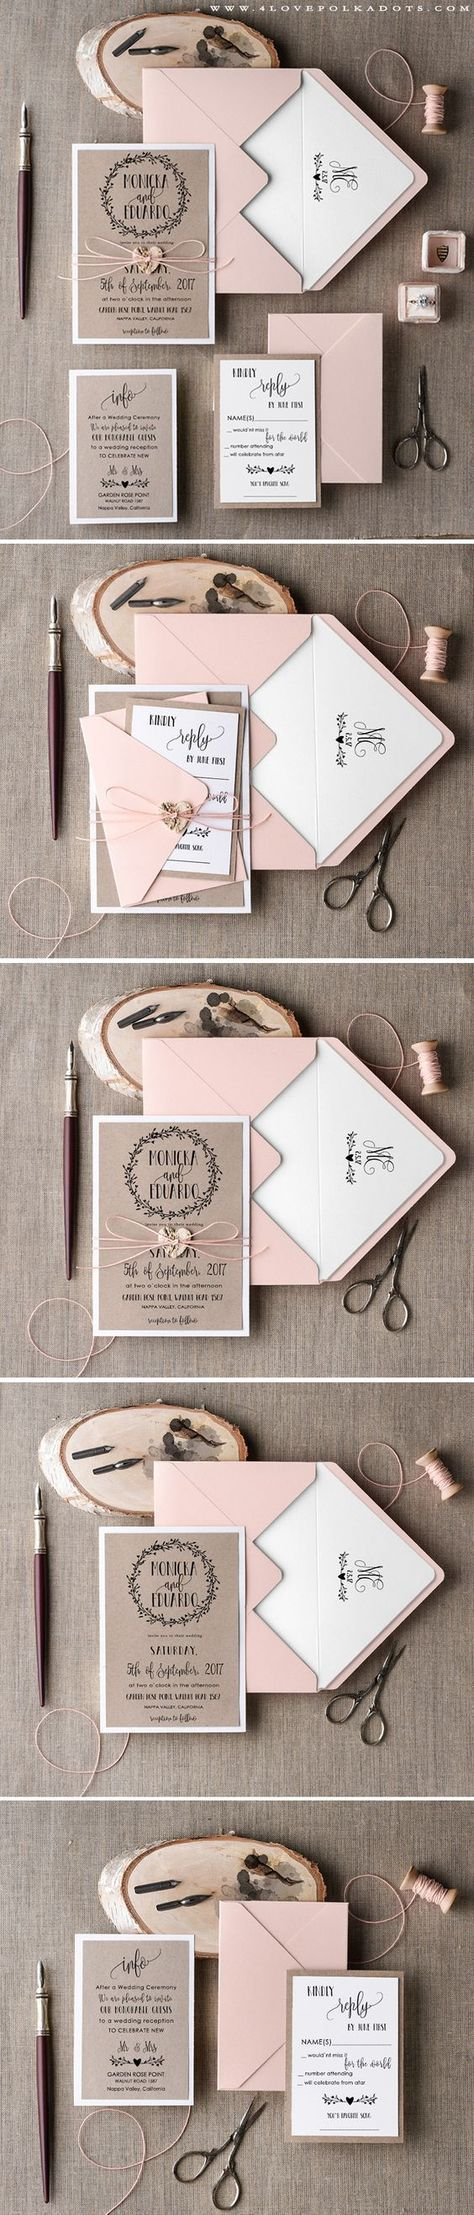 40 Creative Wedding Invitations for Every Style of Celebration